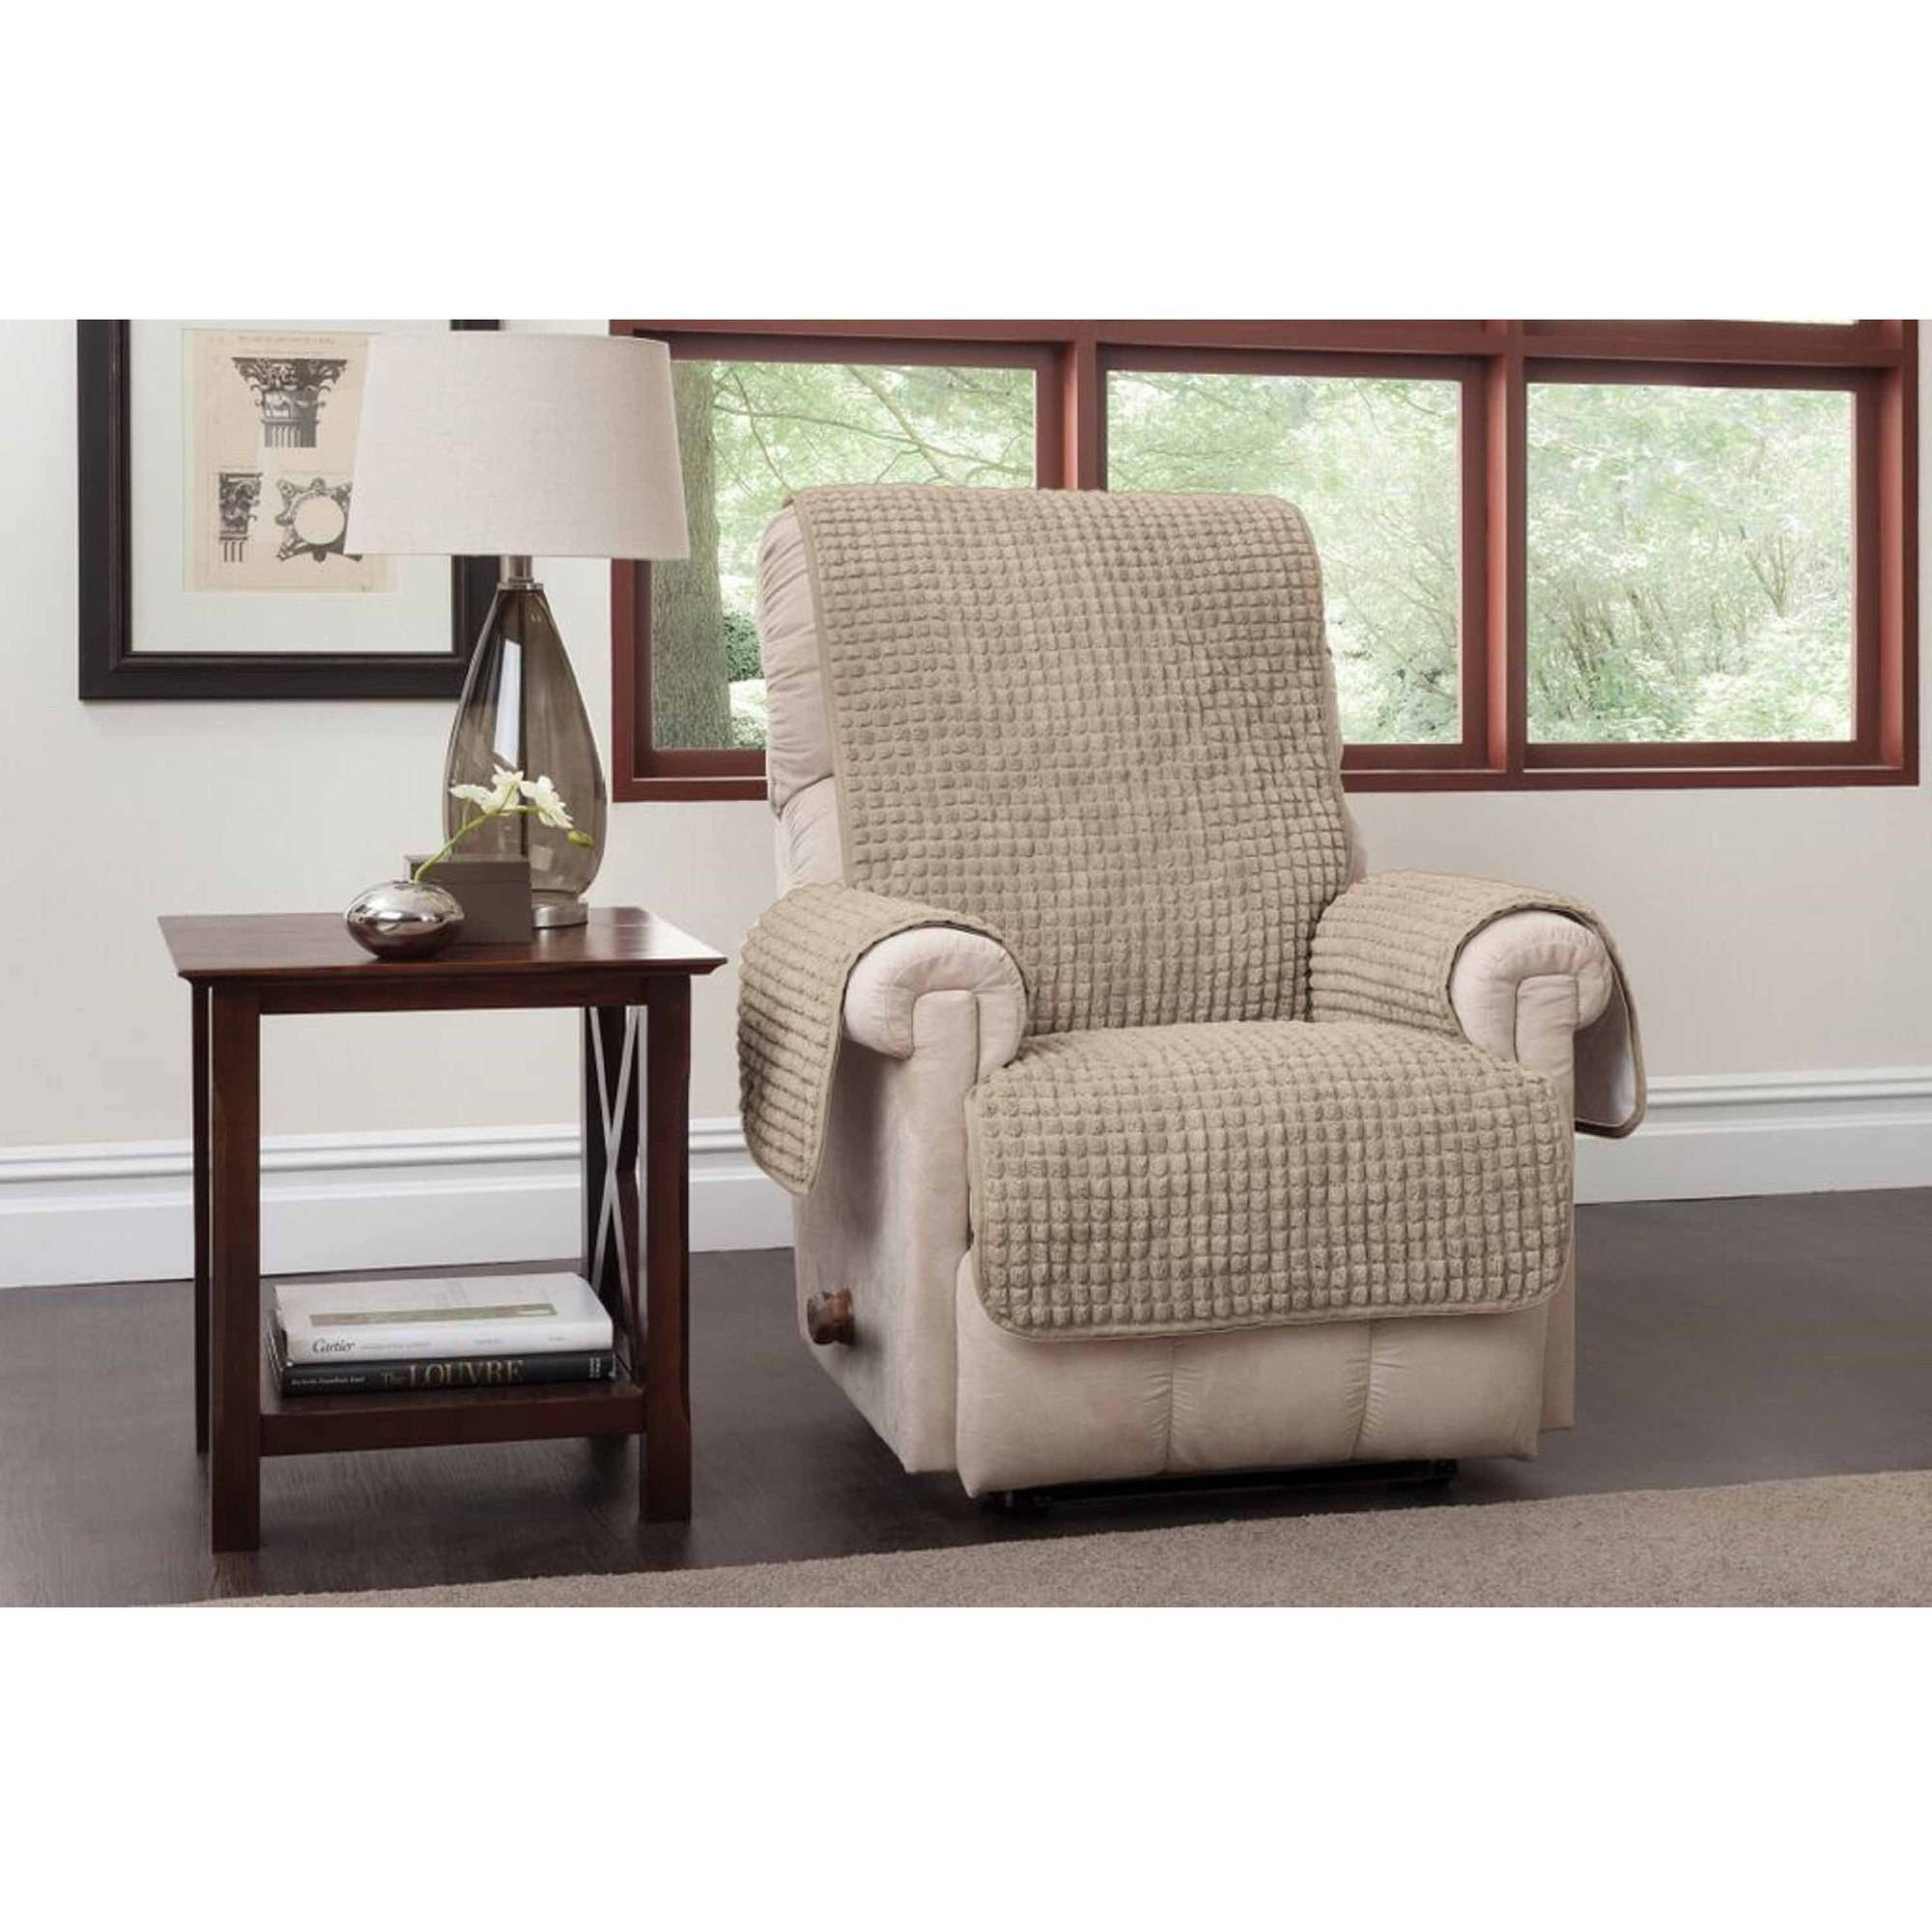 Innovative Textile Solutions Puff Recliner or Wing Chair Protector  sc 1 st  Walmart & Innovative Textile Solutions Puff Recliner or Wing Chair Protector ... islam-shia.org